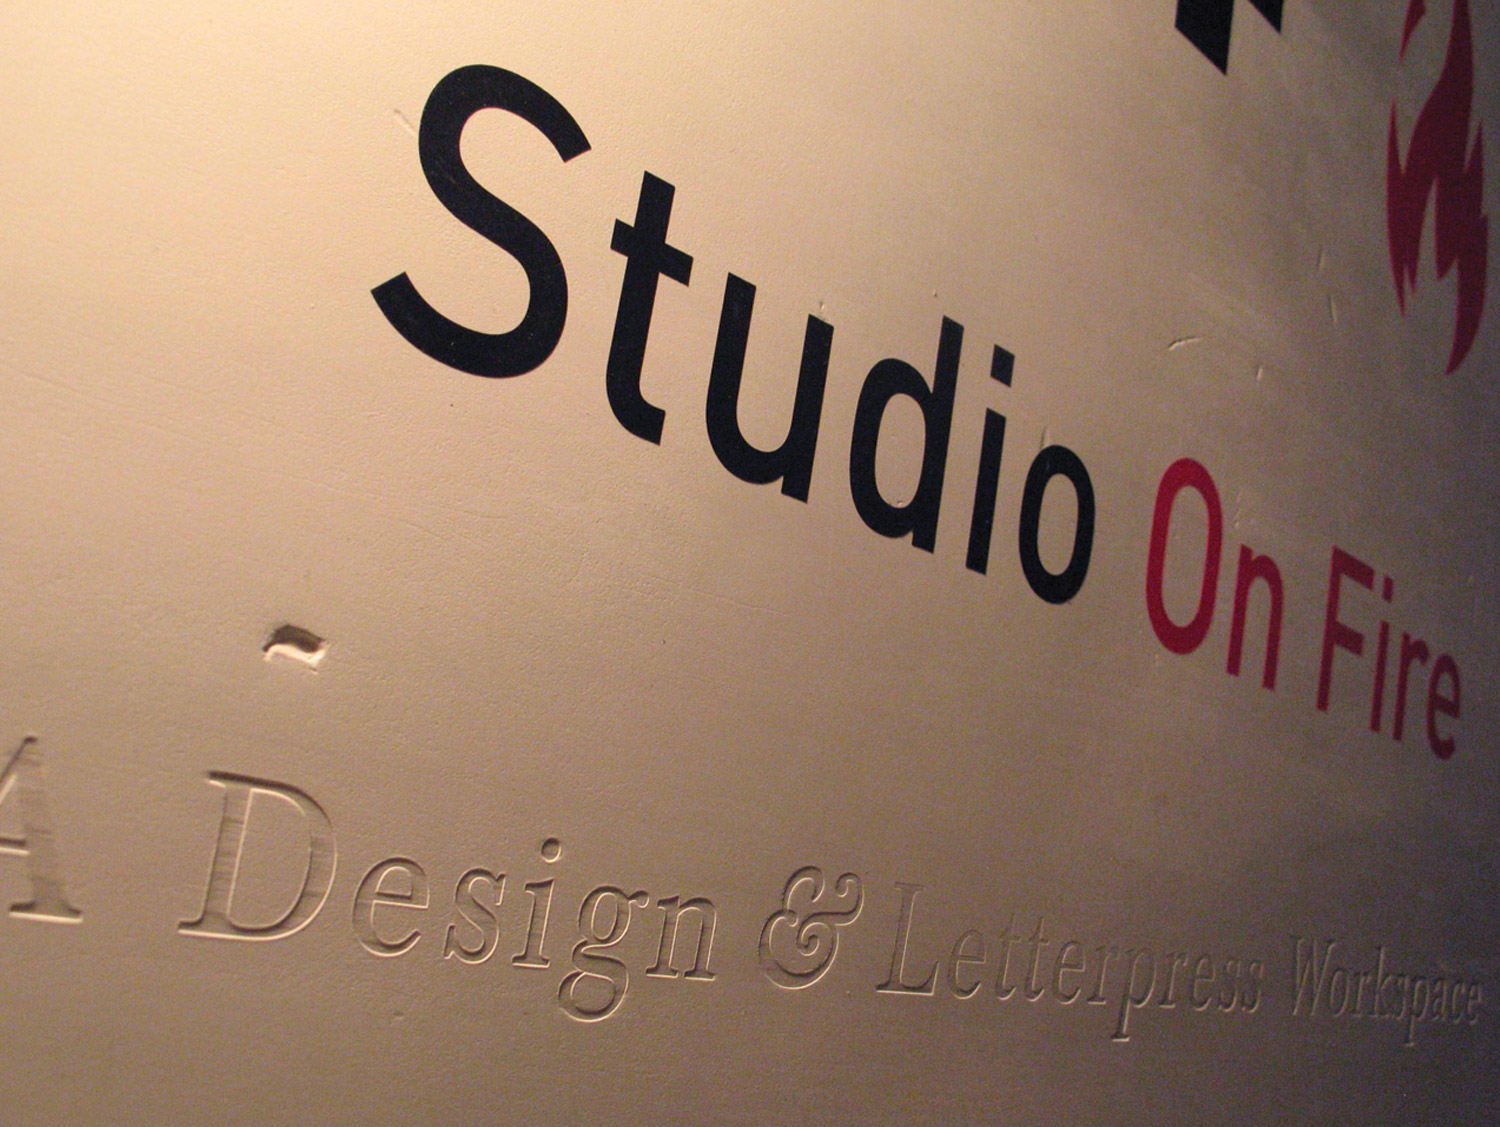 0-Studio-On-Fire-Letterpress-Sign-01.jpg